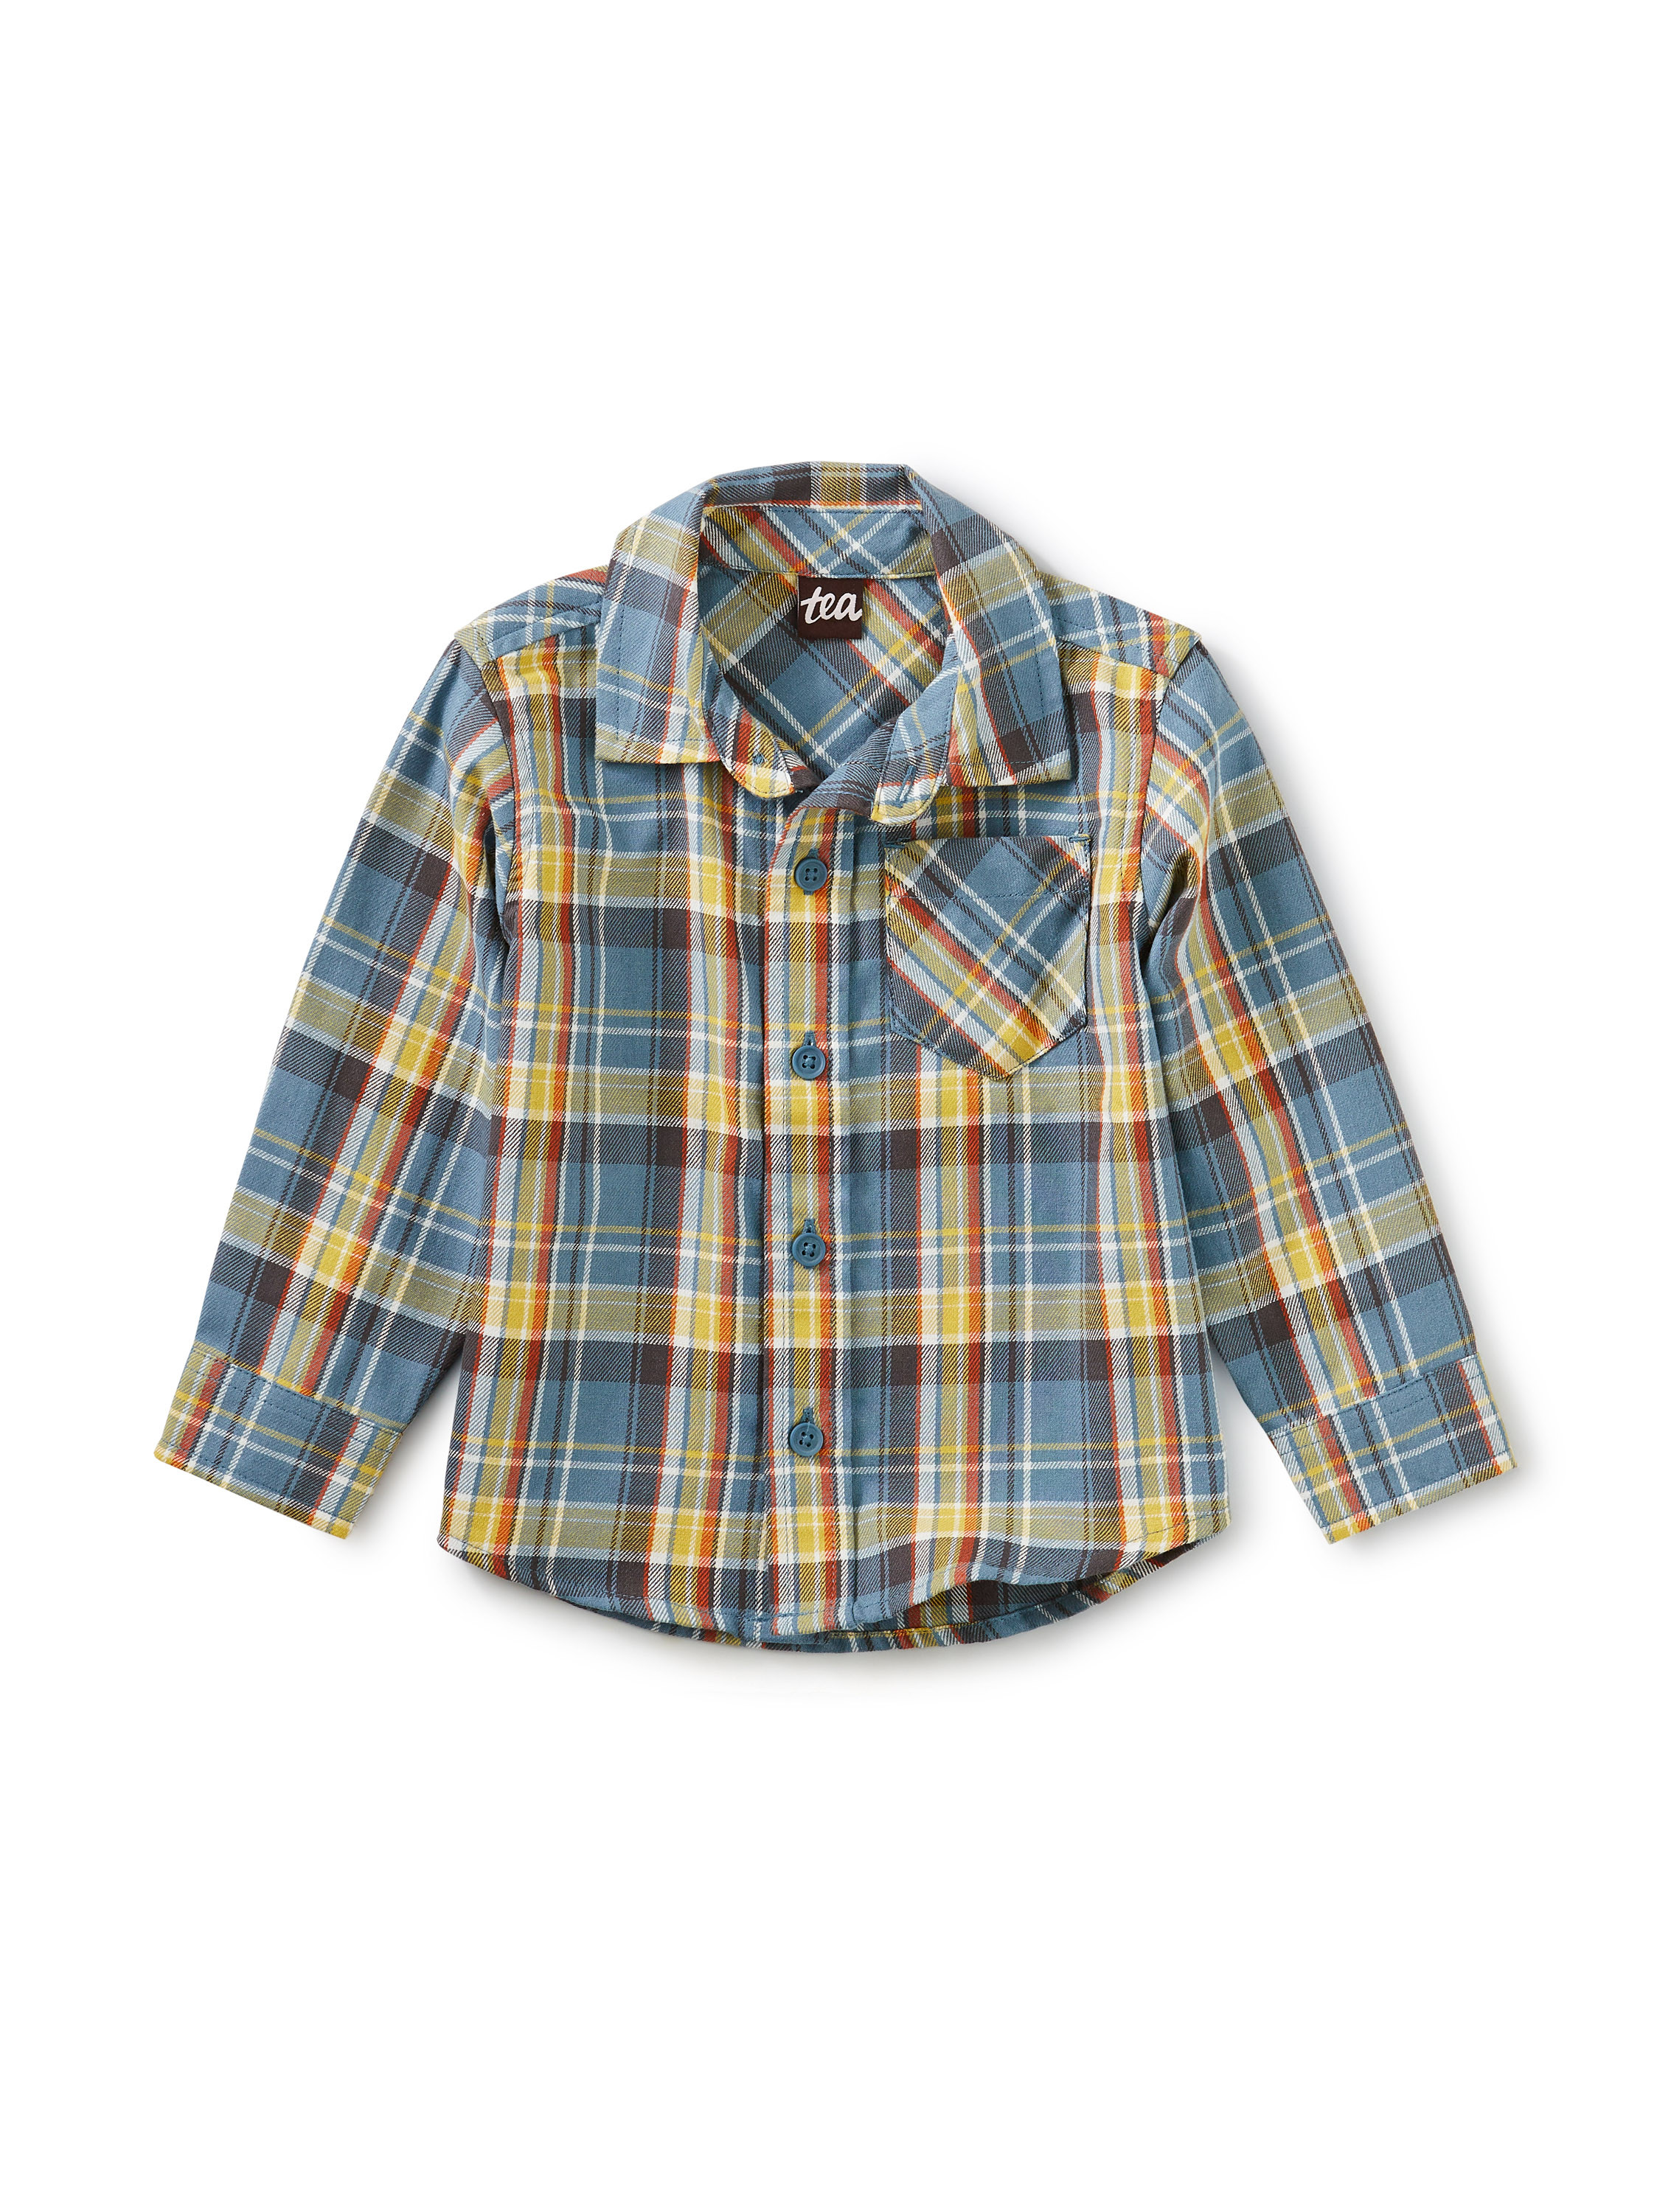 Plaid Baby Shirt Huascaran Plaid